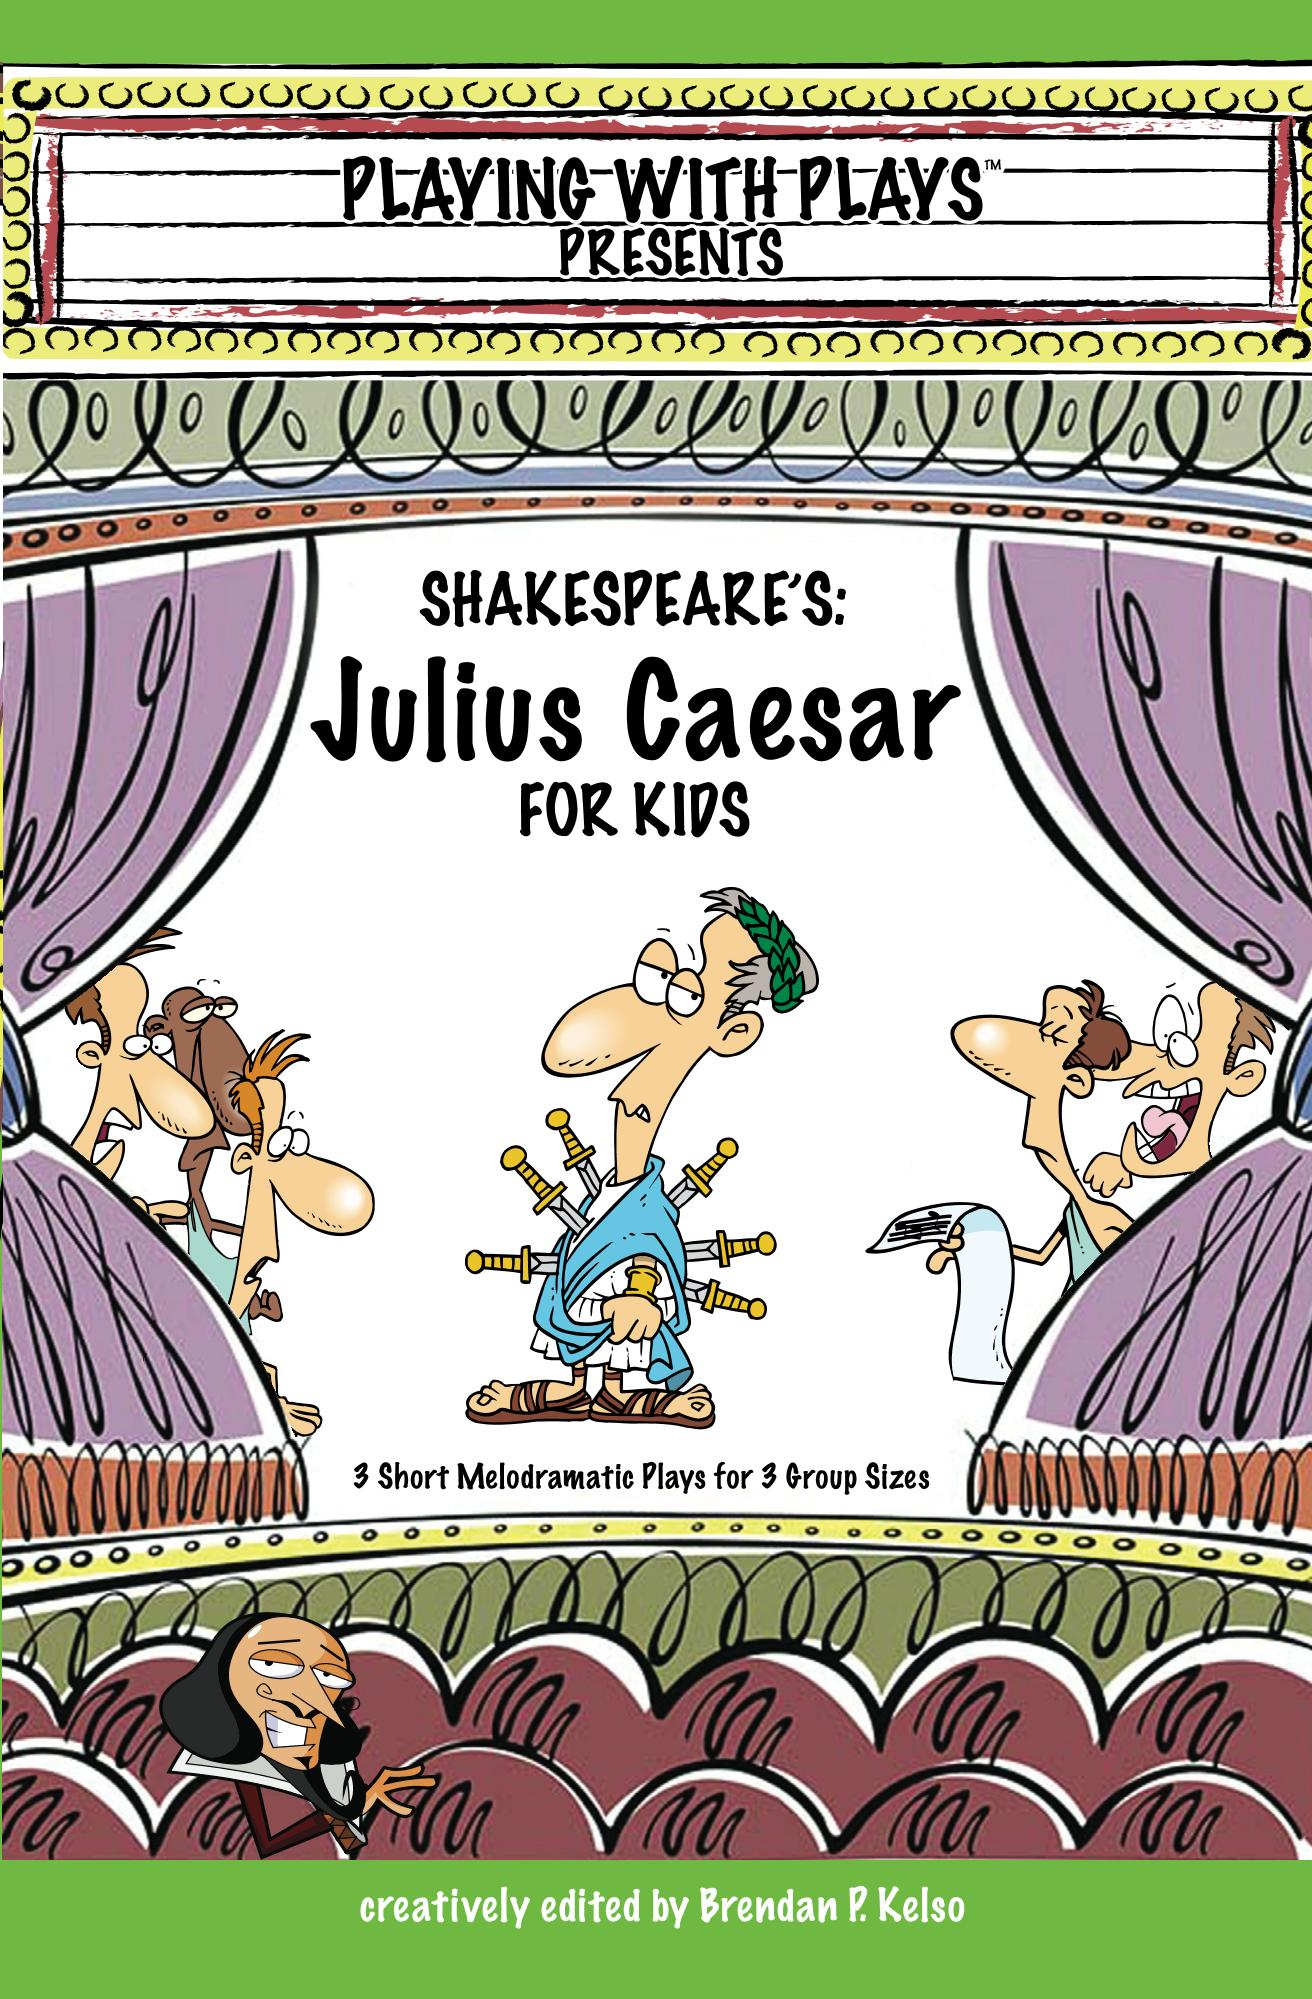 shakespeare s julius caeser 102/100 bce: gaius julius caesar was born (by caesarean section according to an unlikely legend) of aurelia and gaius julius caesar, a praetor his family had noble, patrician roots, although they were neither rich nor influential in this period.